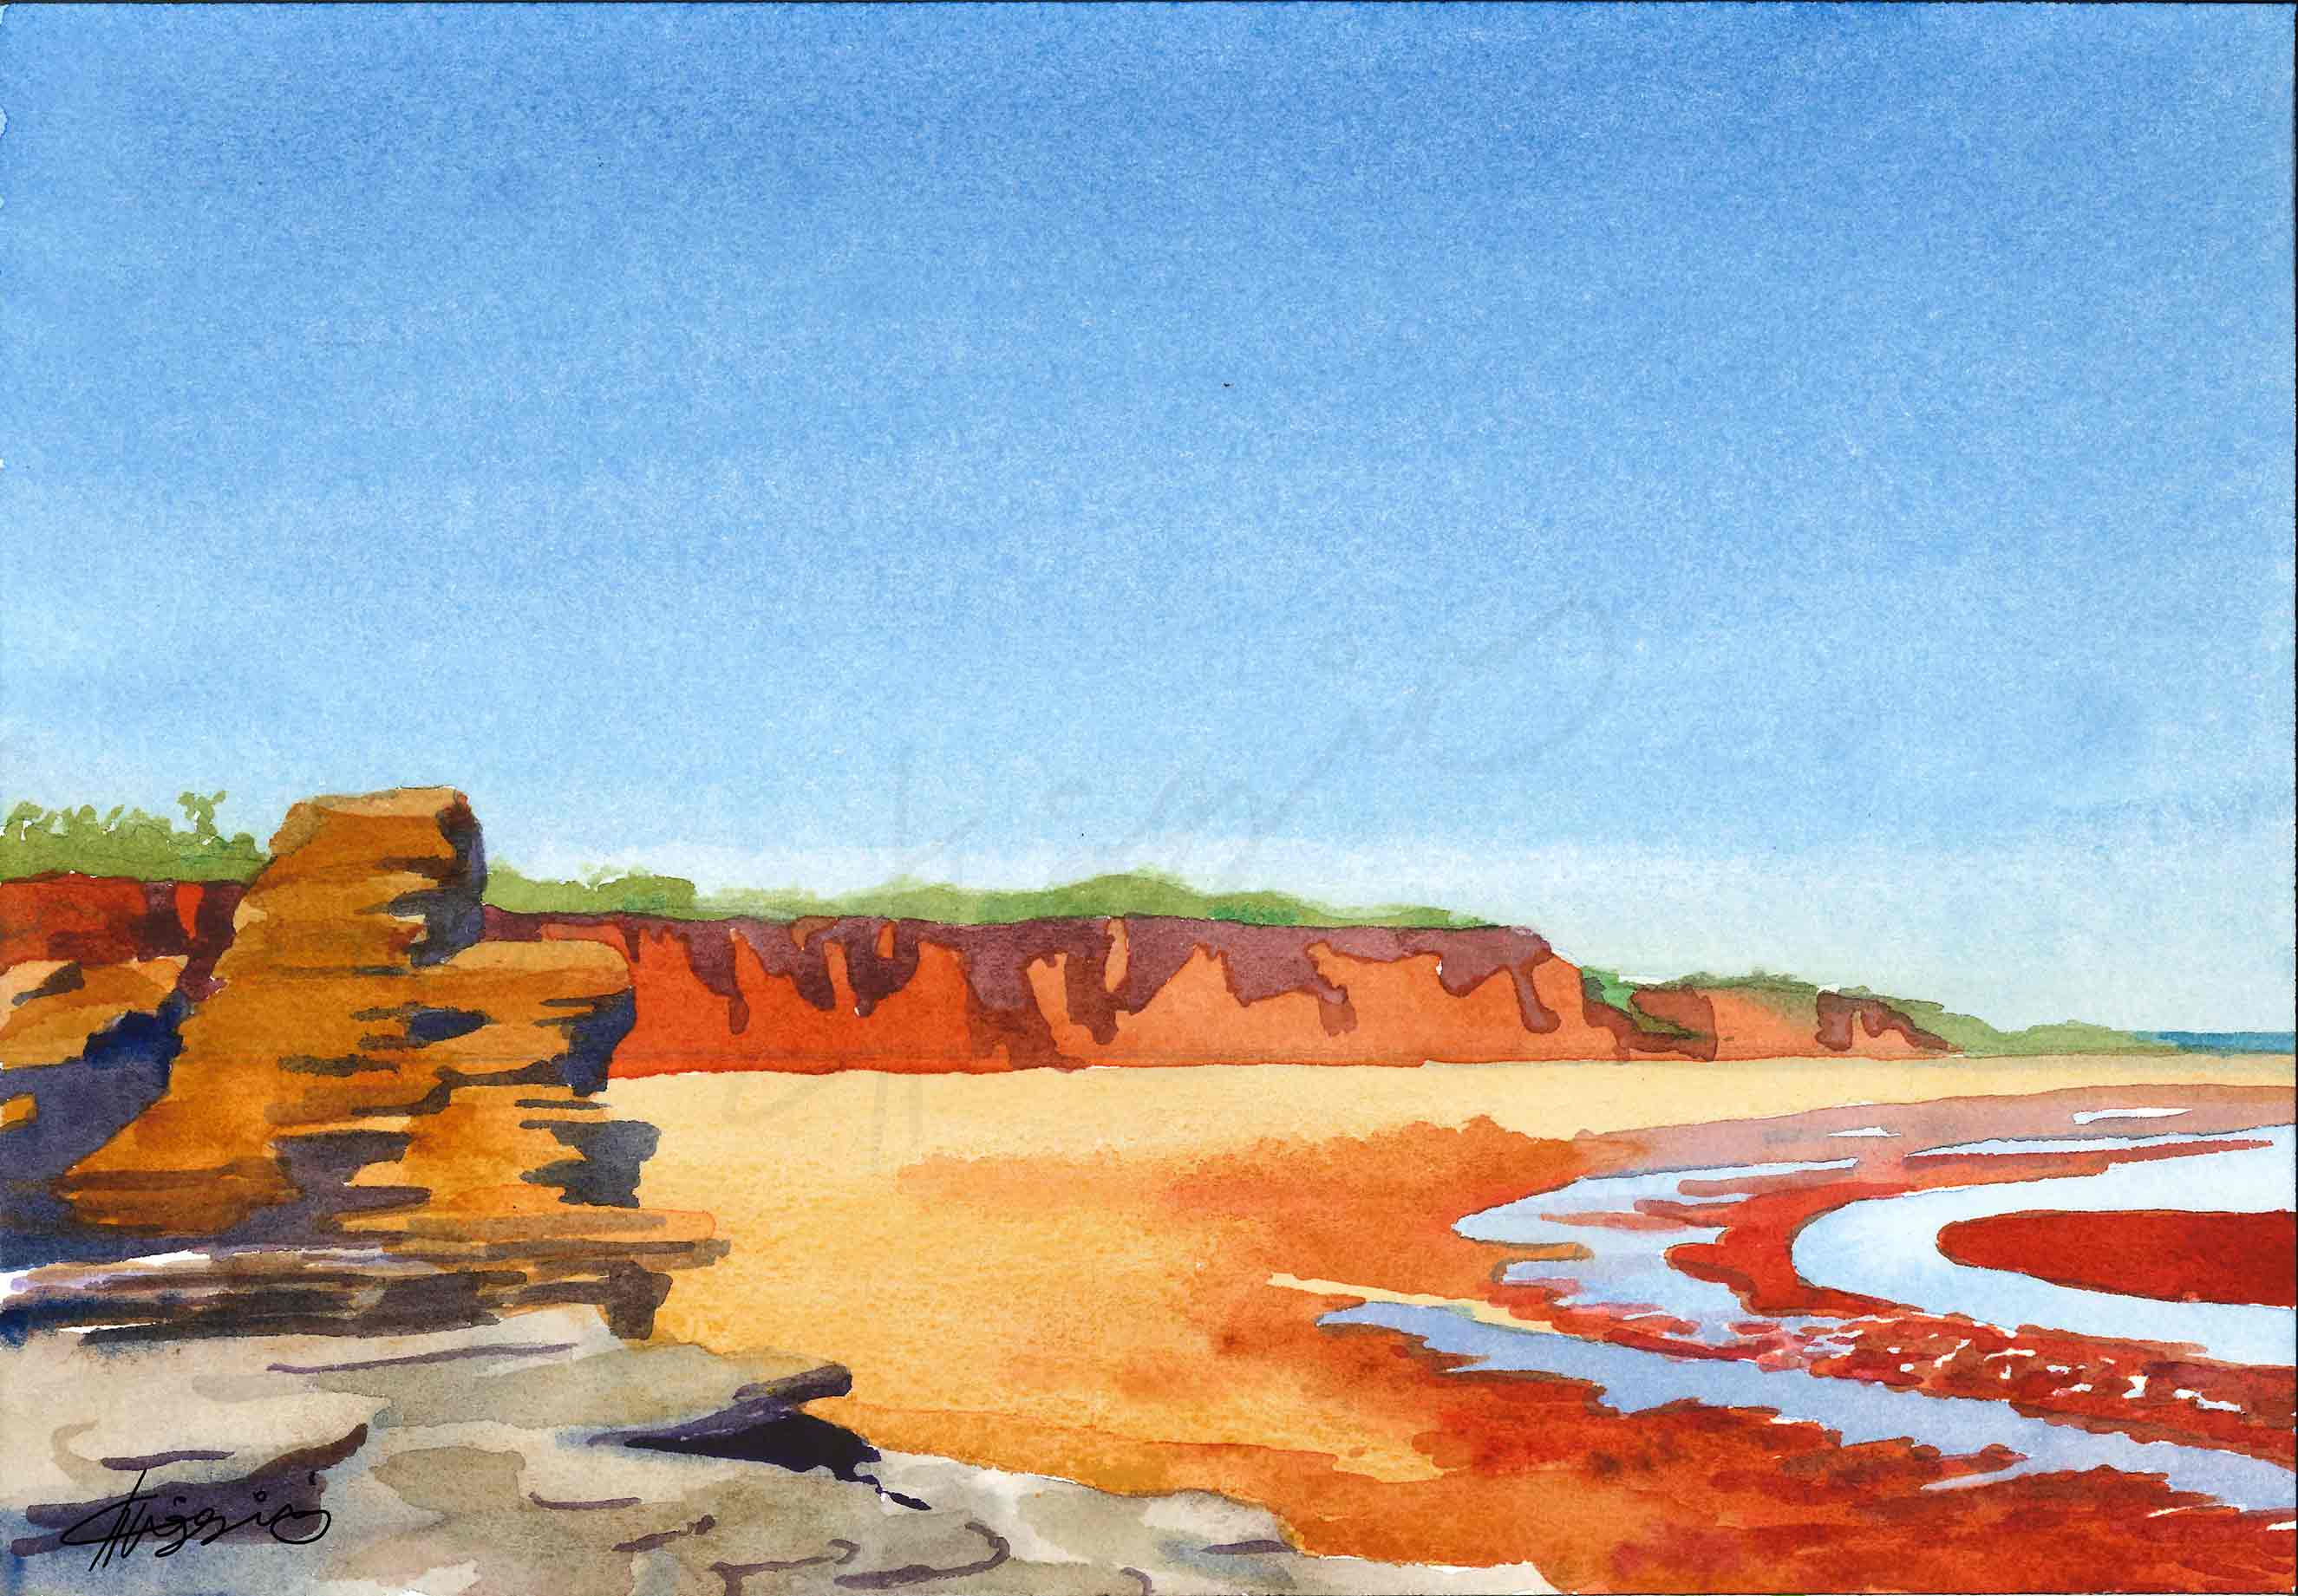 A watercolour painting of the red sands and cliffs of Broome at low tide, contrasted against the vibrant blue of the sky.